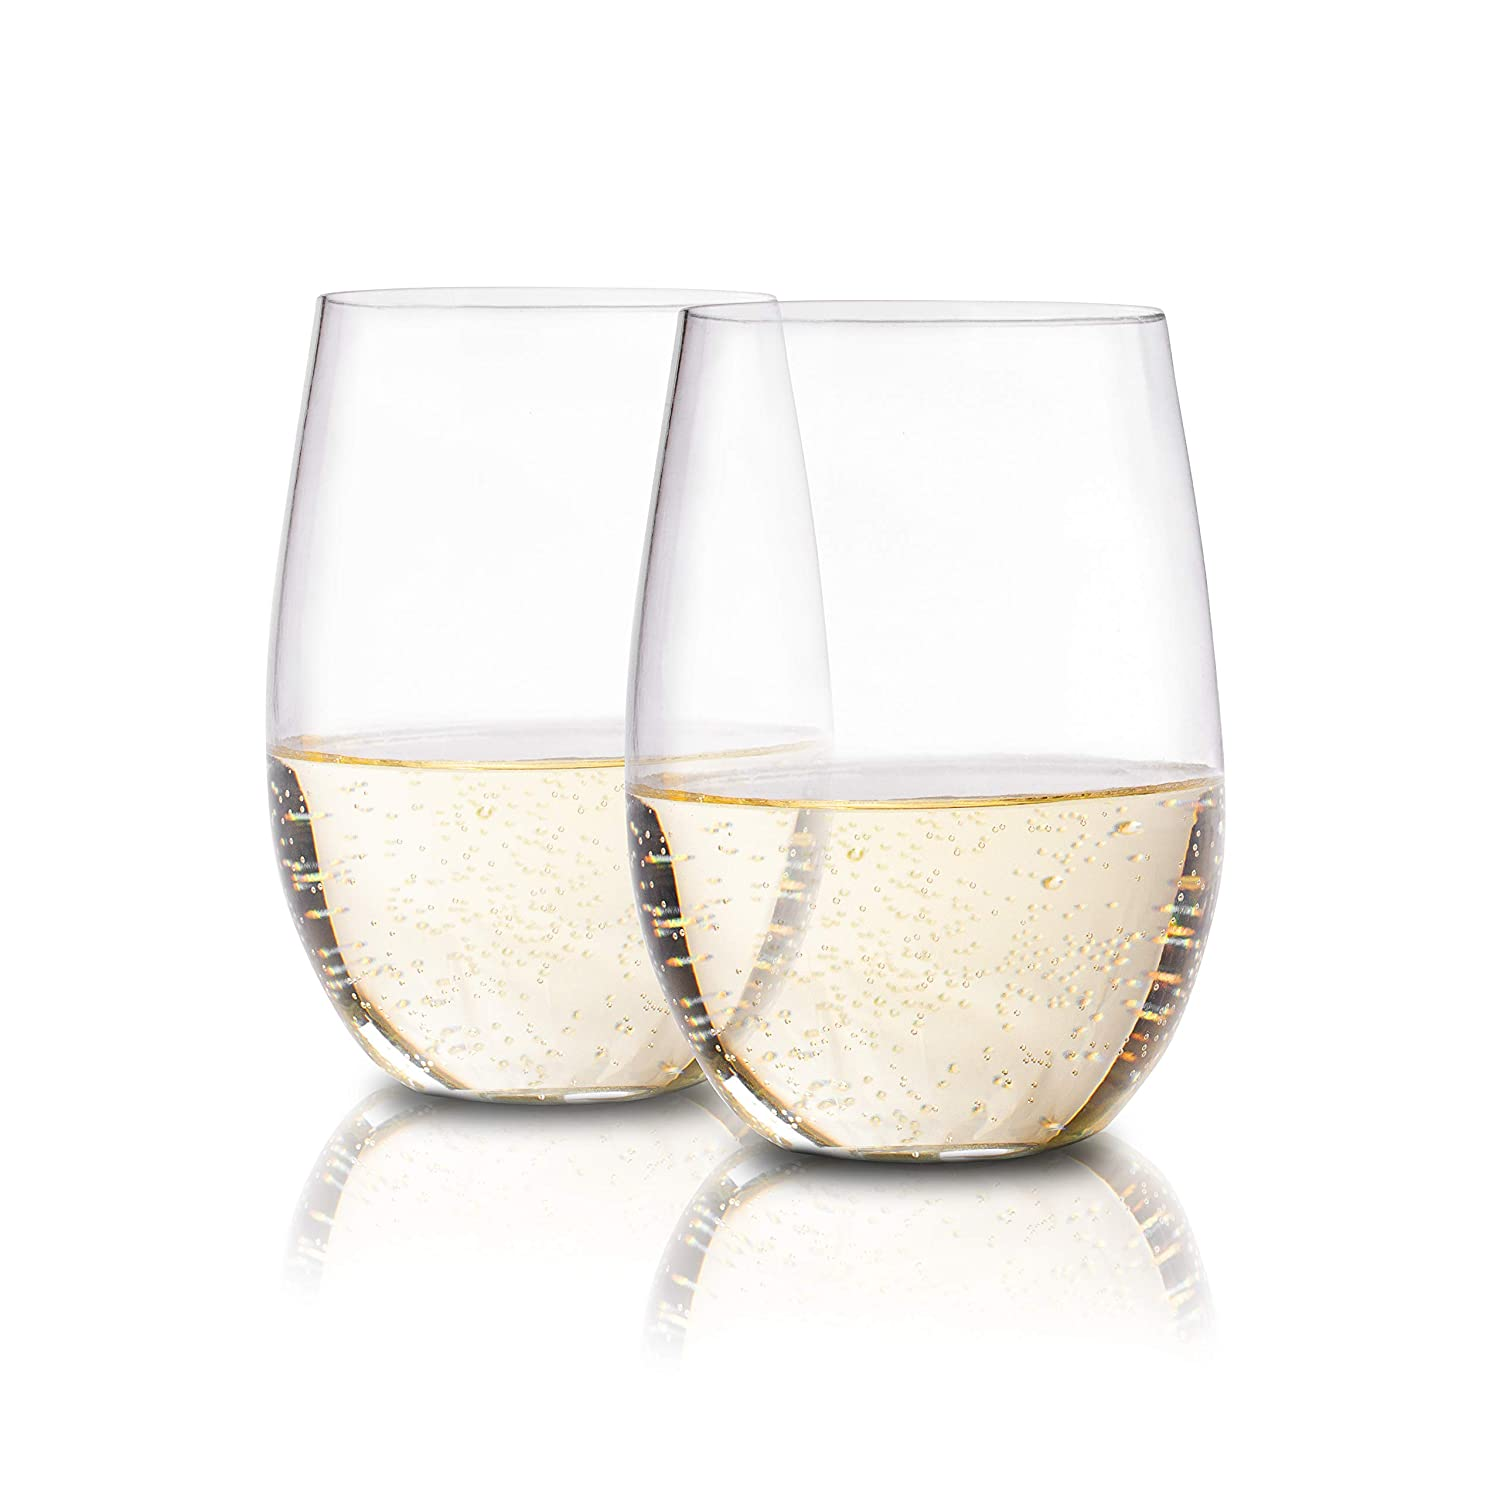 c5a9c3269a2 Plastic Stemless Wine Glasses by En Soiree - Set of 10 Clear, Flexible,  Disposable, Reusable, Unbreakable, and Shatterproof 16oz Glass - Use for ...